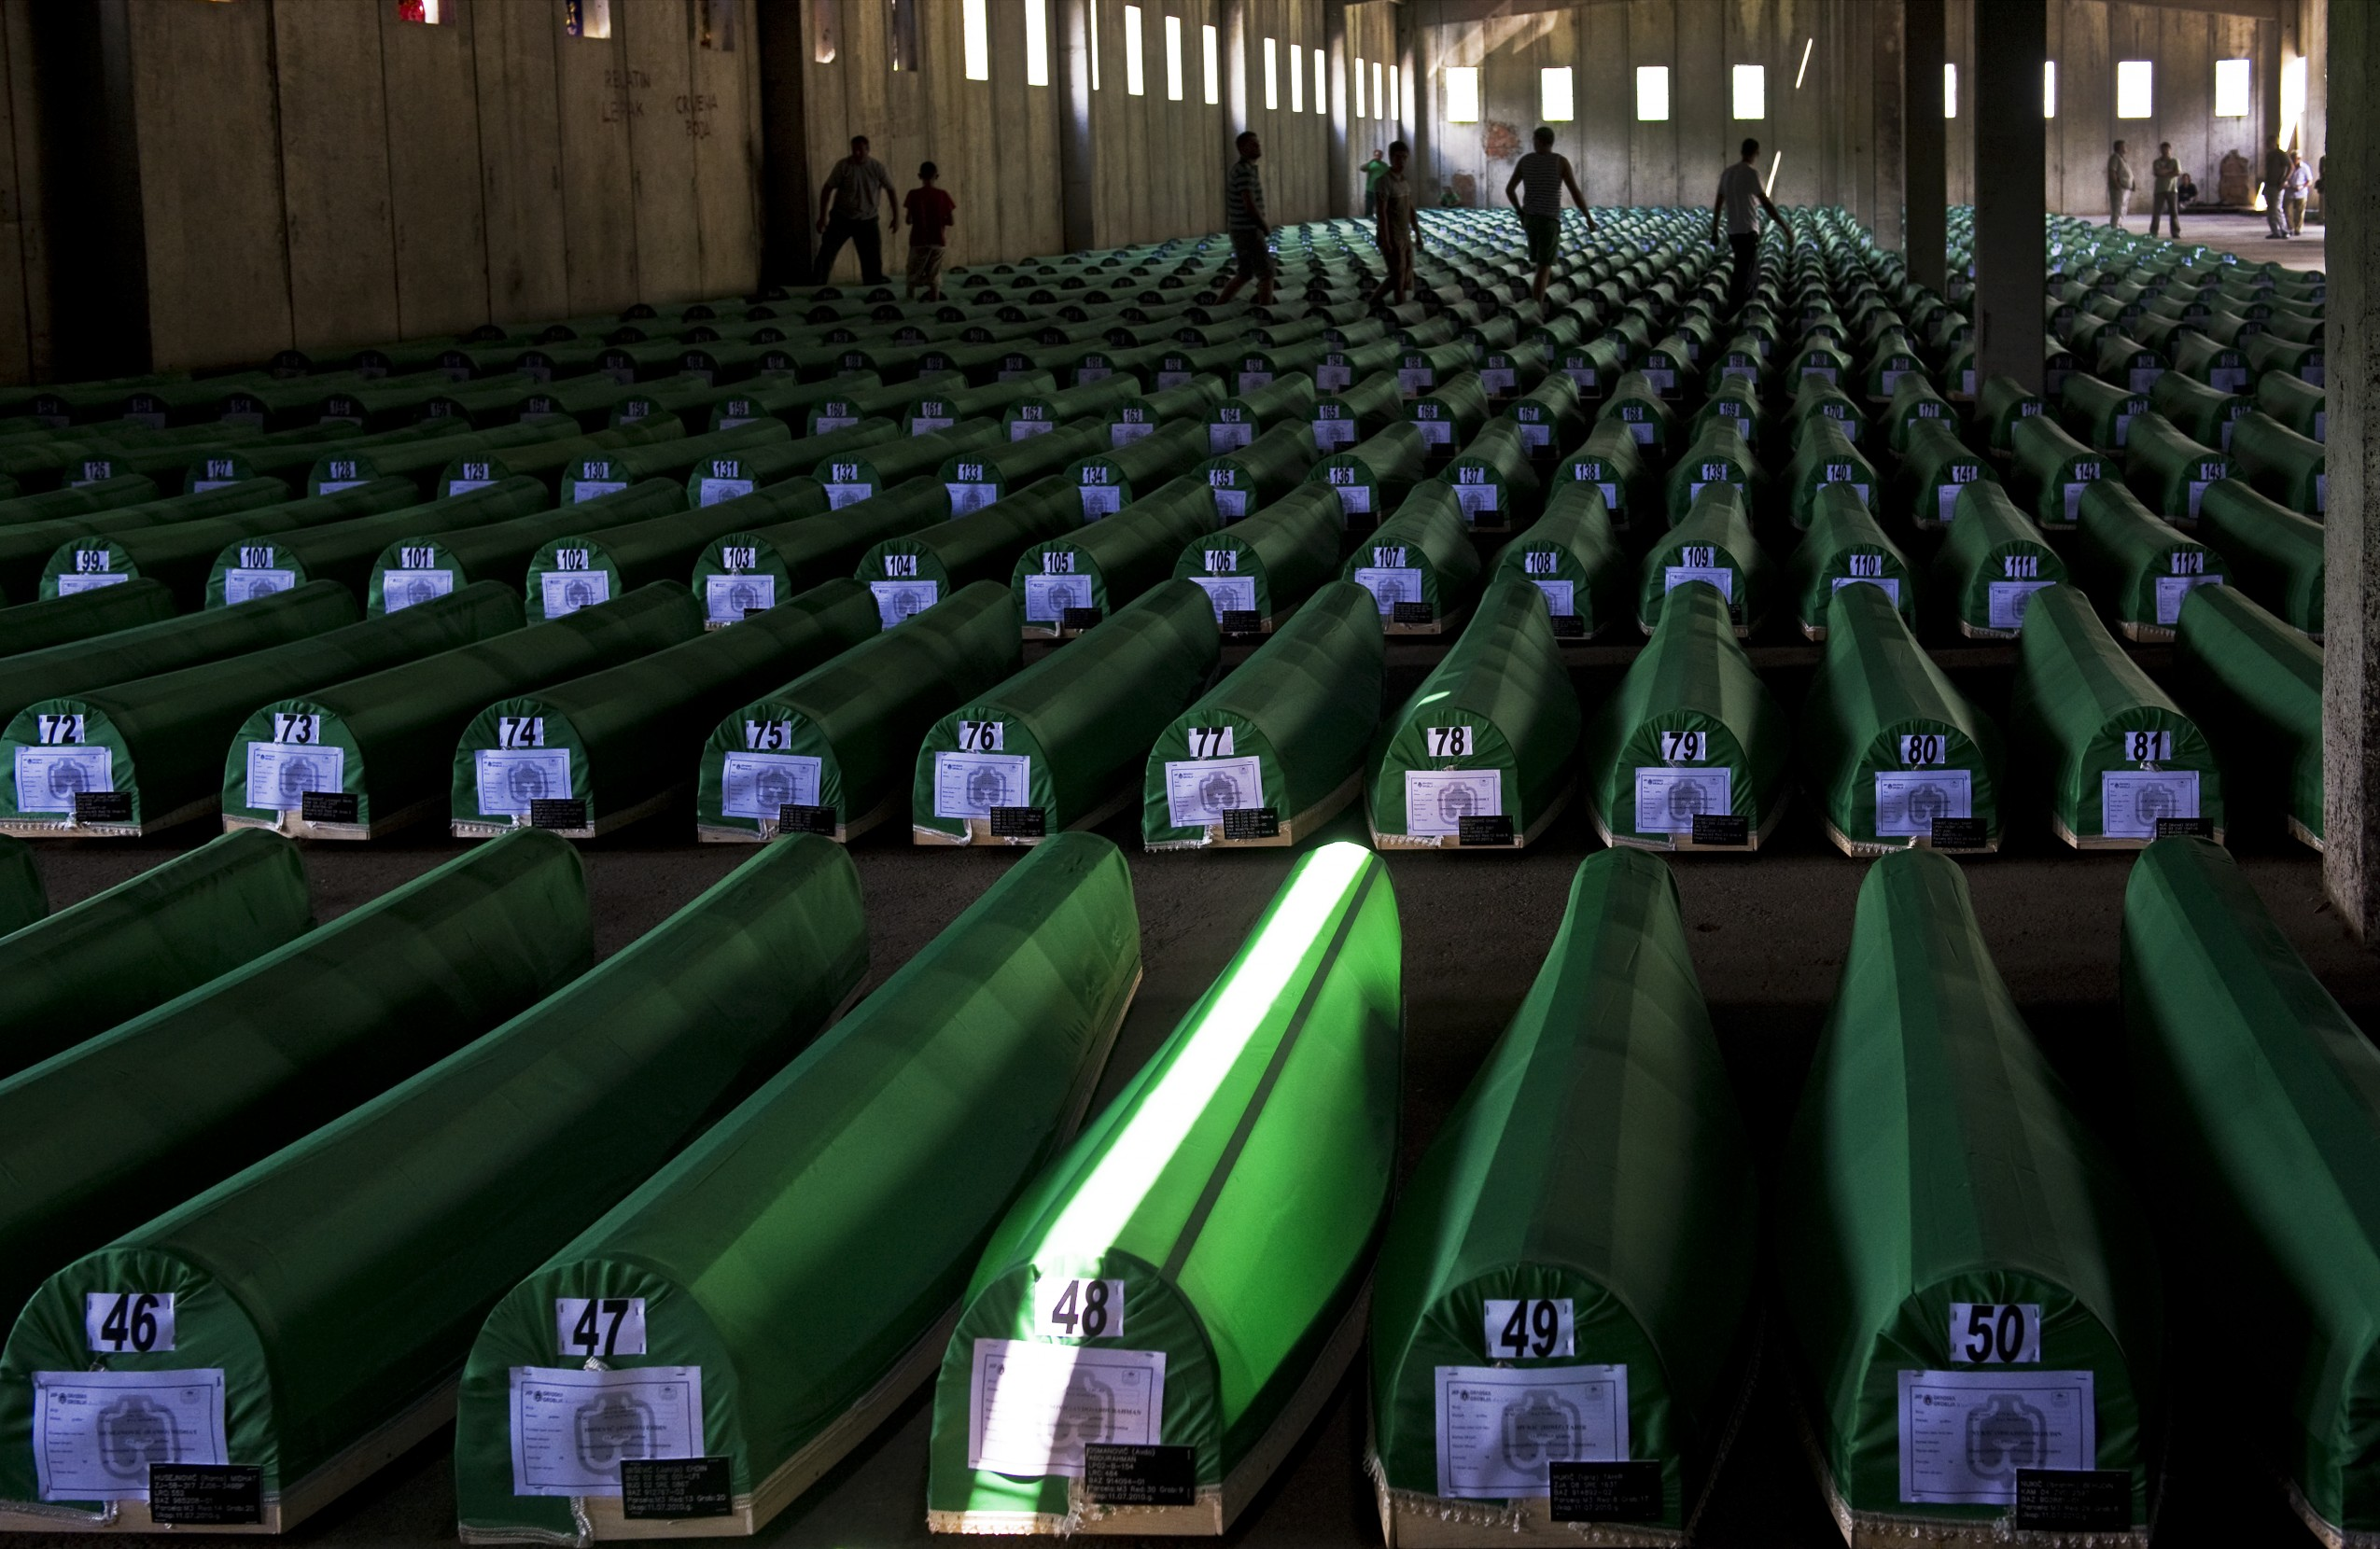 """Srebrenica genocide was the genocidal killing of more than 8000 Bosniaks, mainly men and boys around the town of Srebrenica during the Bosnian War. The killing was perpetrated by units of the Army of Republika Srpska (VRS) under the command of General Ratko Mladic. In April 1993, the United Nations declared the besieged enclave of Srebrenica a """"safe area"""" under UN protection. However, in July 1995, the United Nations Protection Force (UNPROFOR) contingent of Dutch peacekeepers did not prevent th --- Image by © Arne Hodalic/Corbis"""